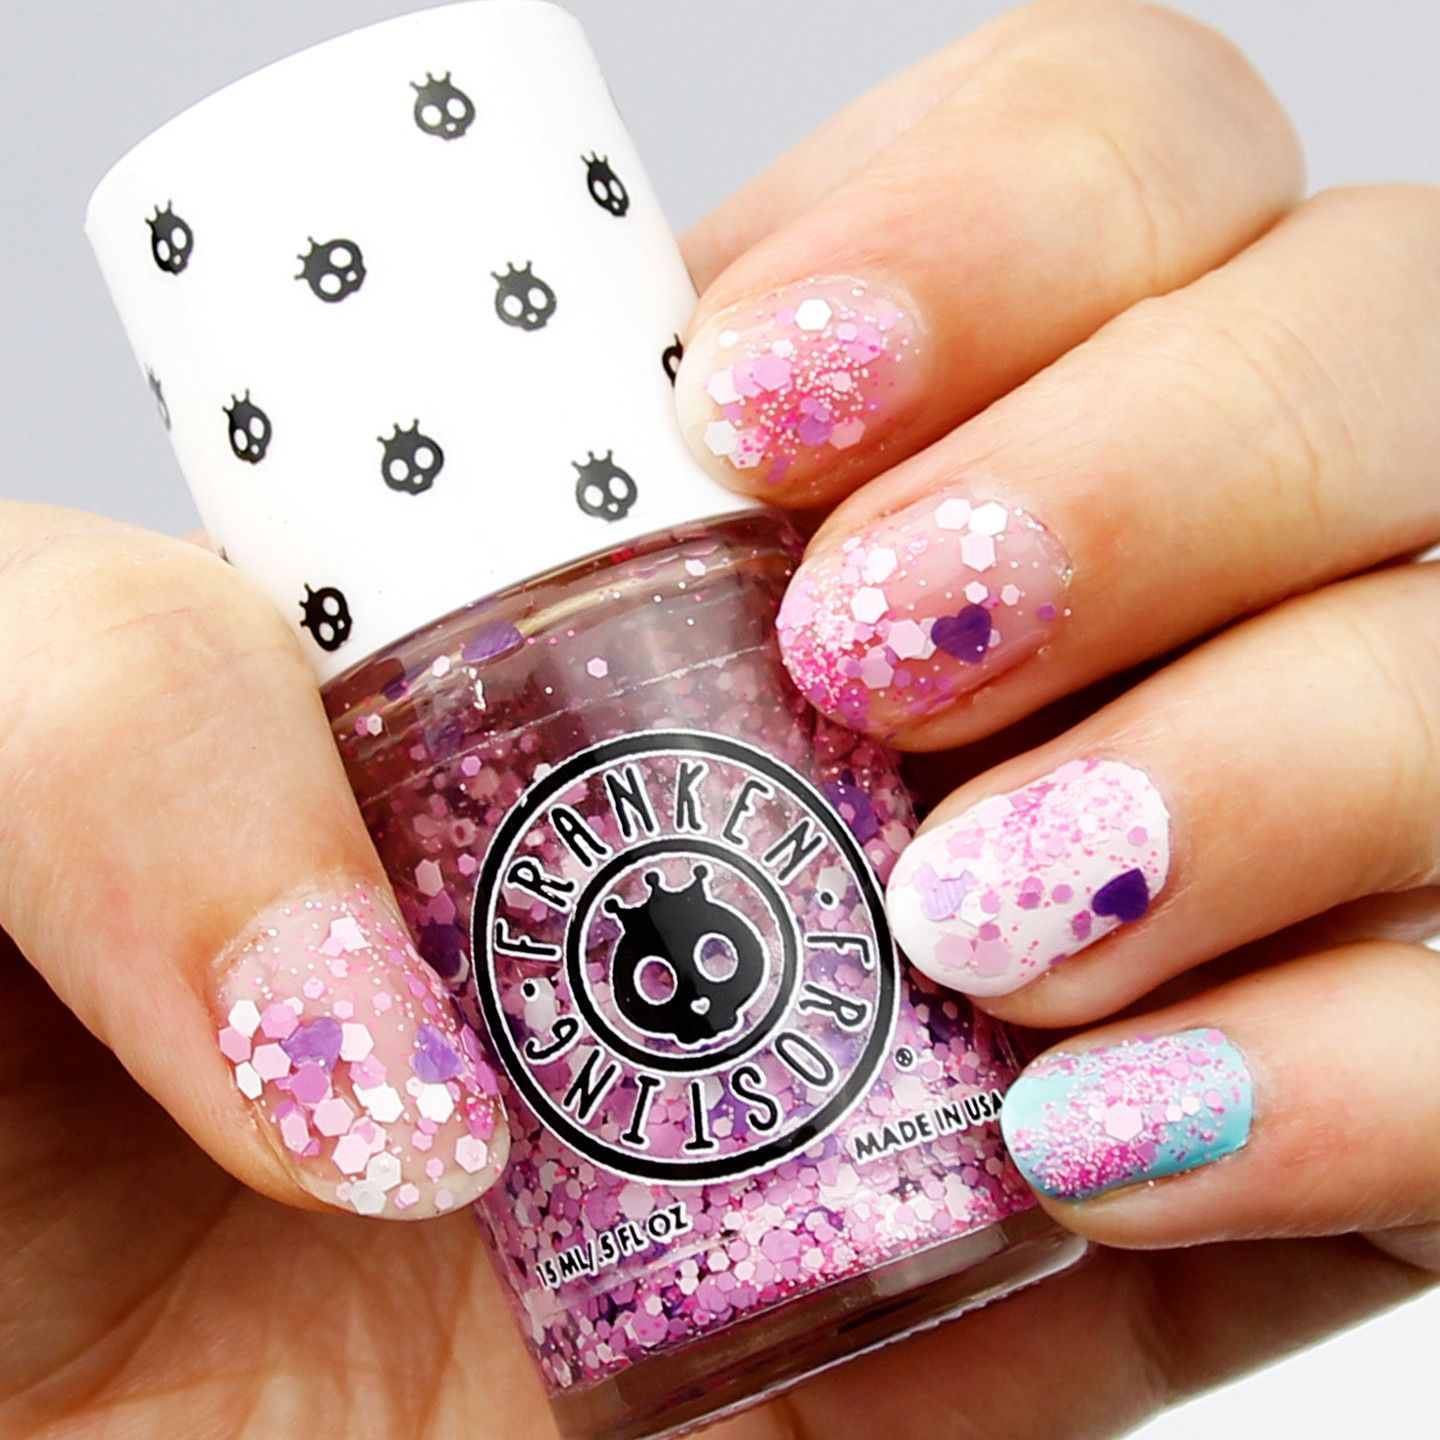 How To Blend Nail Polish On Your Nails